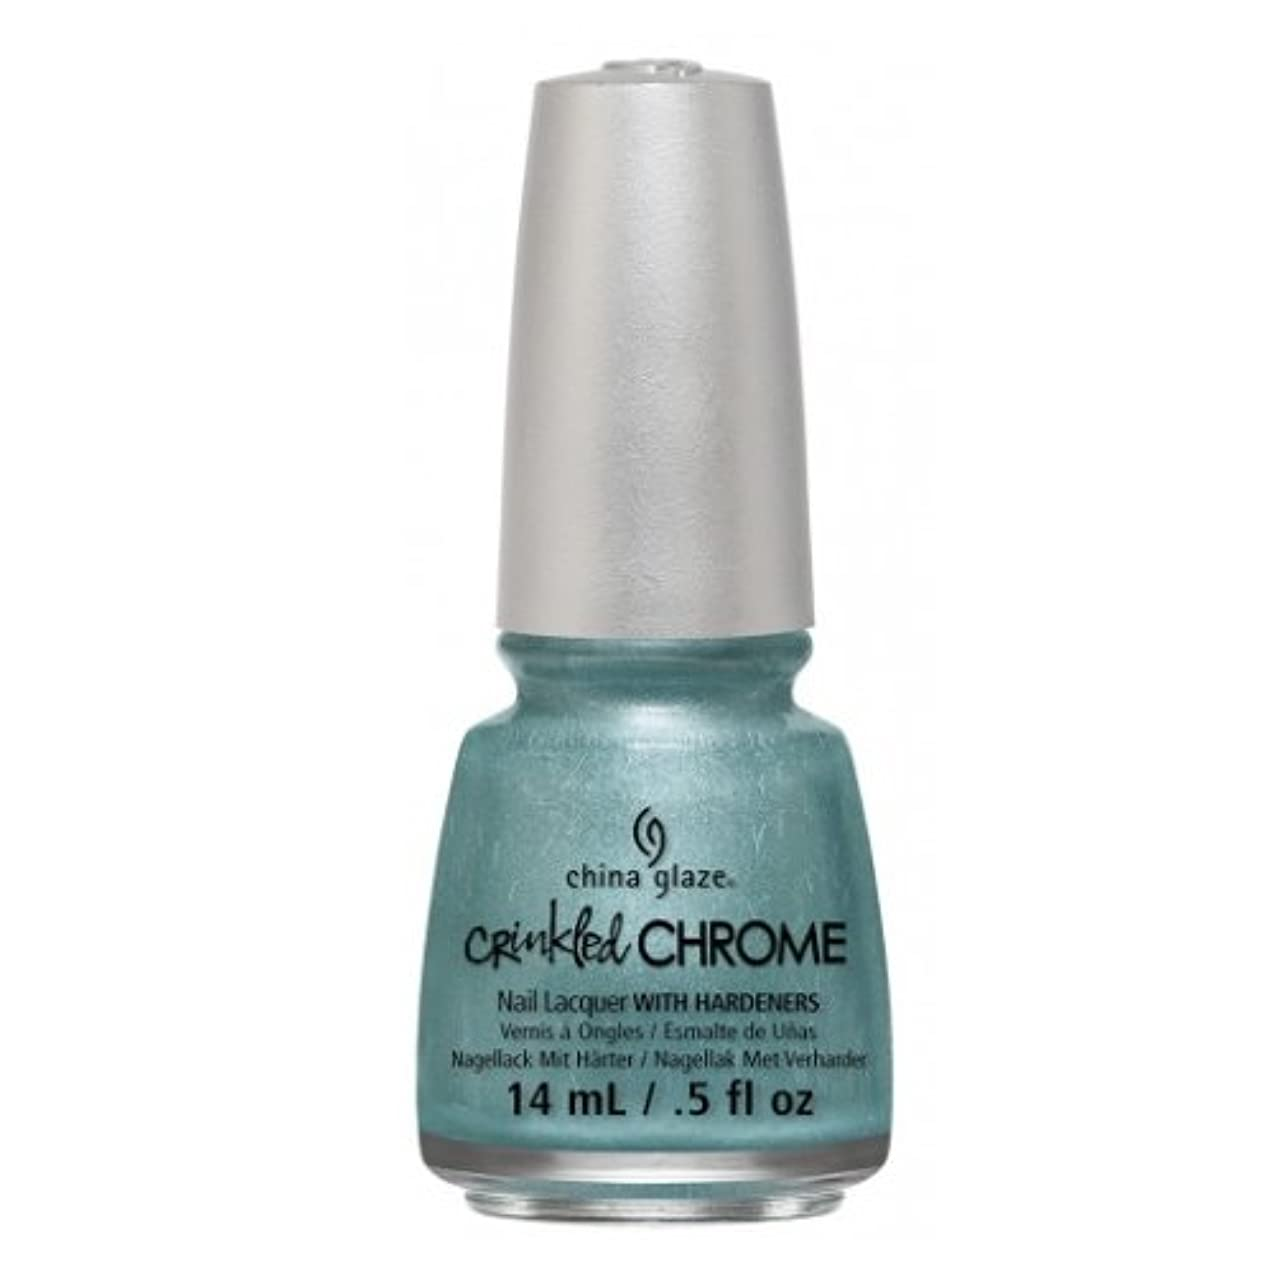 サラダ登録する正当化する(3 Pack) CHINA GLAZE Nail Lacquer - Crinkled Chrome - Don't Be Foiled (並行輸入品)